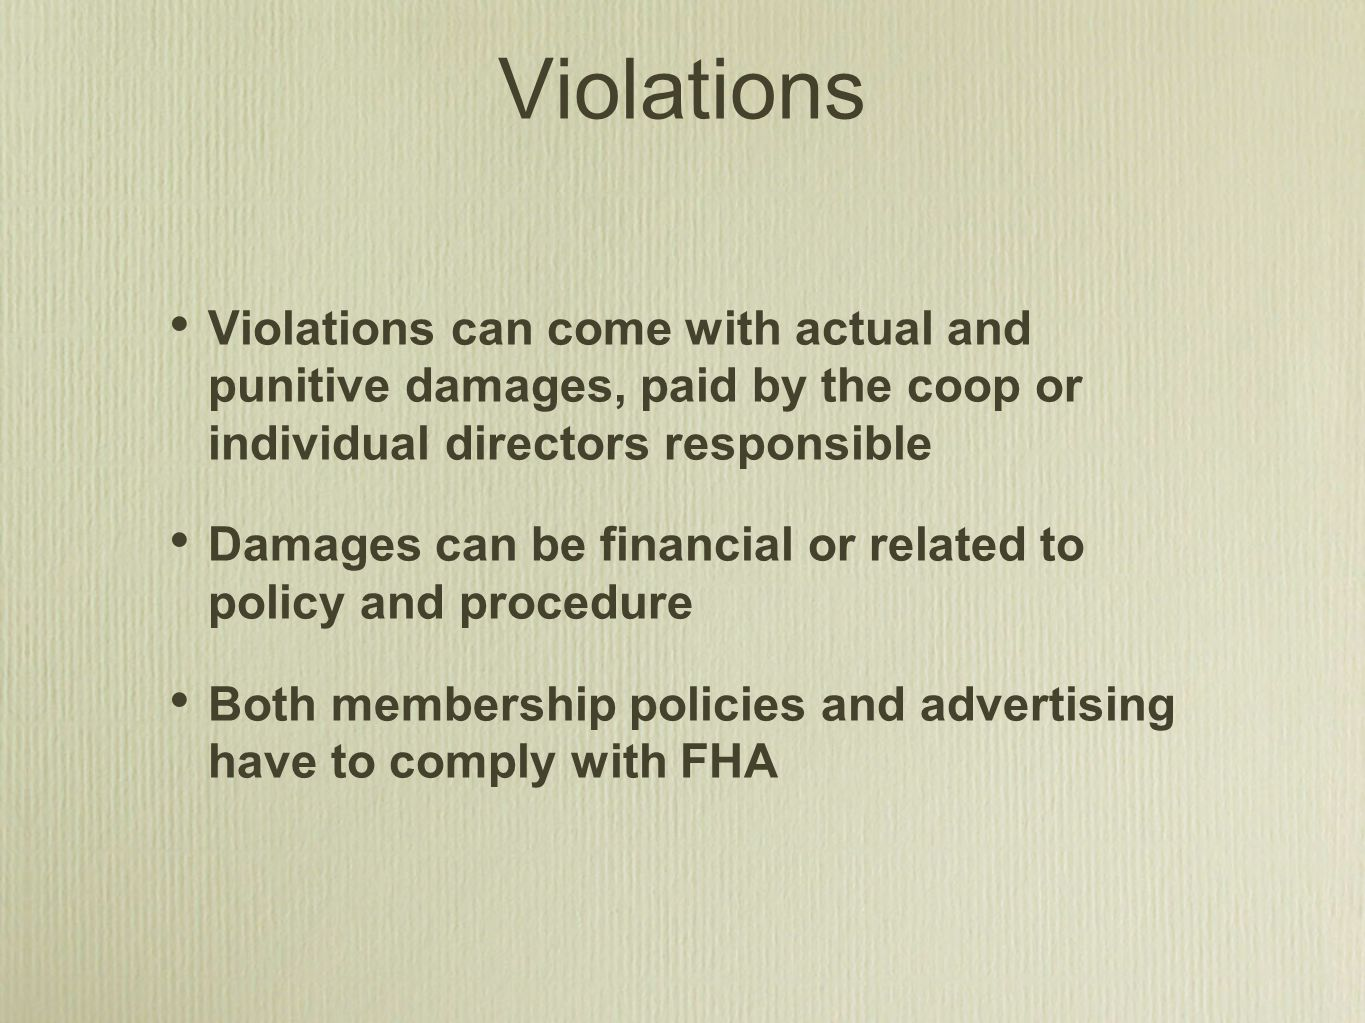 Violations Violations can come with actual and punitive damages, paid by the coop or individual directors responsible Damages can be financial or related to policy and procedure Both membership policies and advertising have to comply with FHA